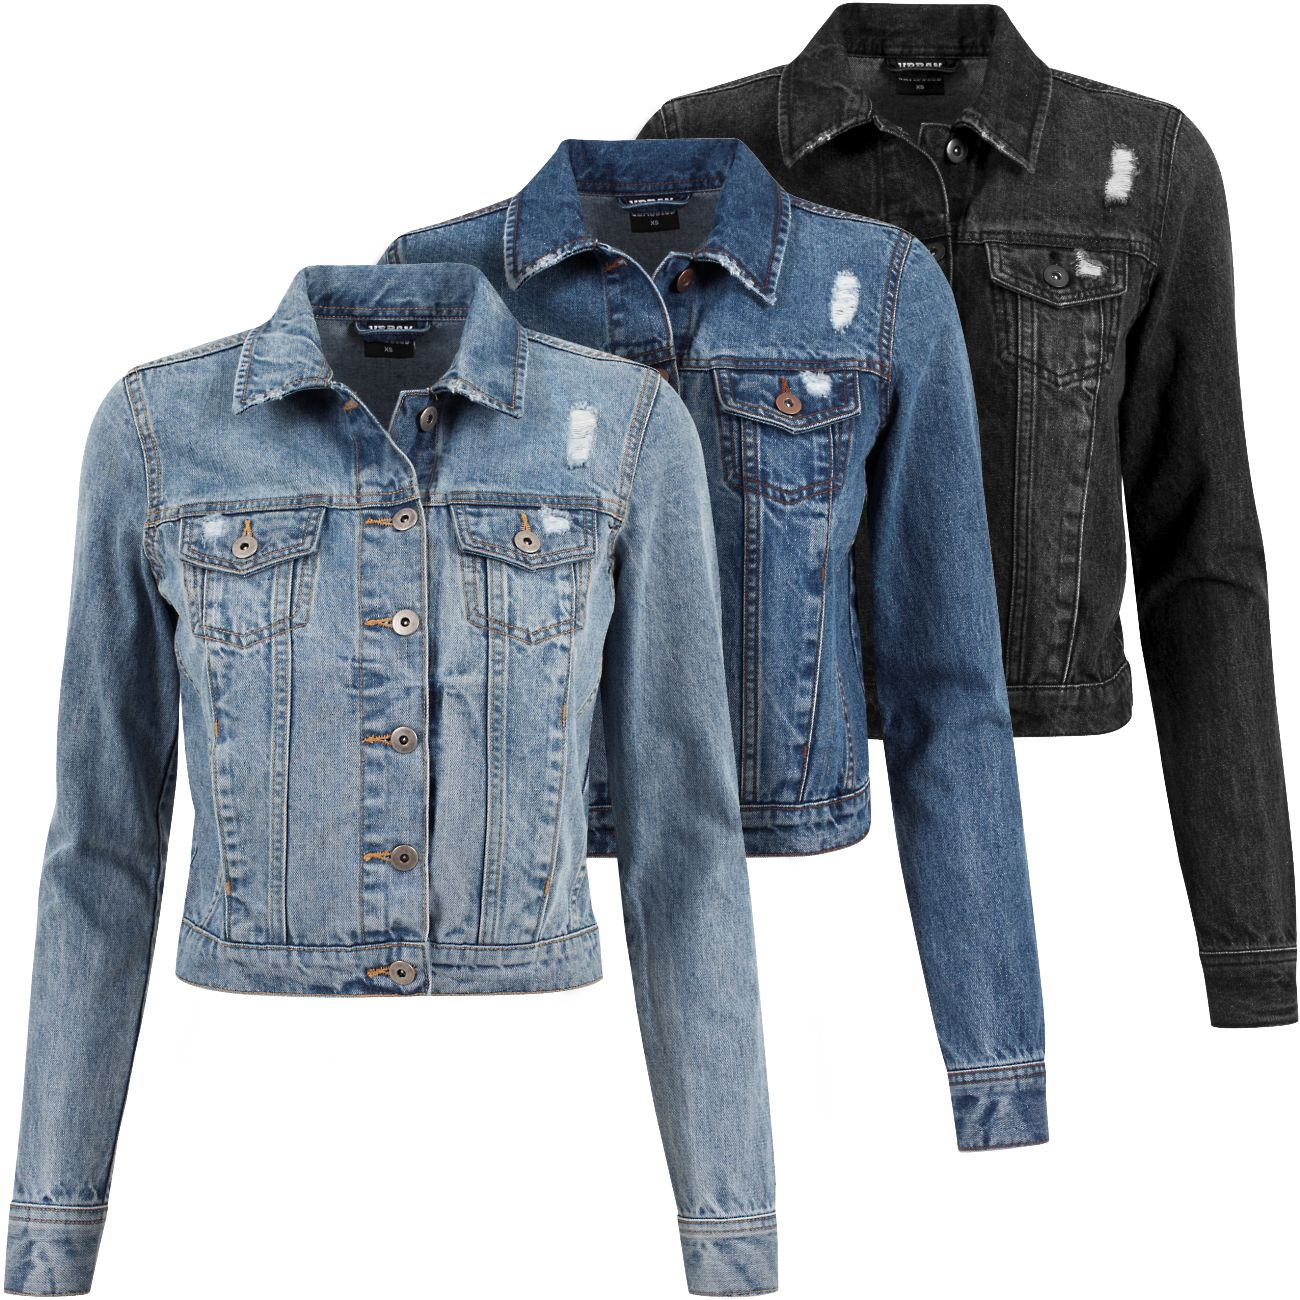 urban classics damen jeans jacke tb1542 jeansjacke sommer freizeit destroyed ebay. Black Bedroom Furniture Sets. Home Design Ideas